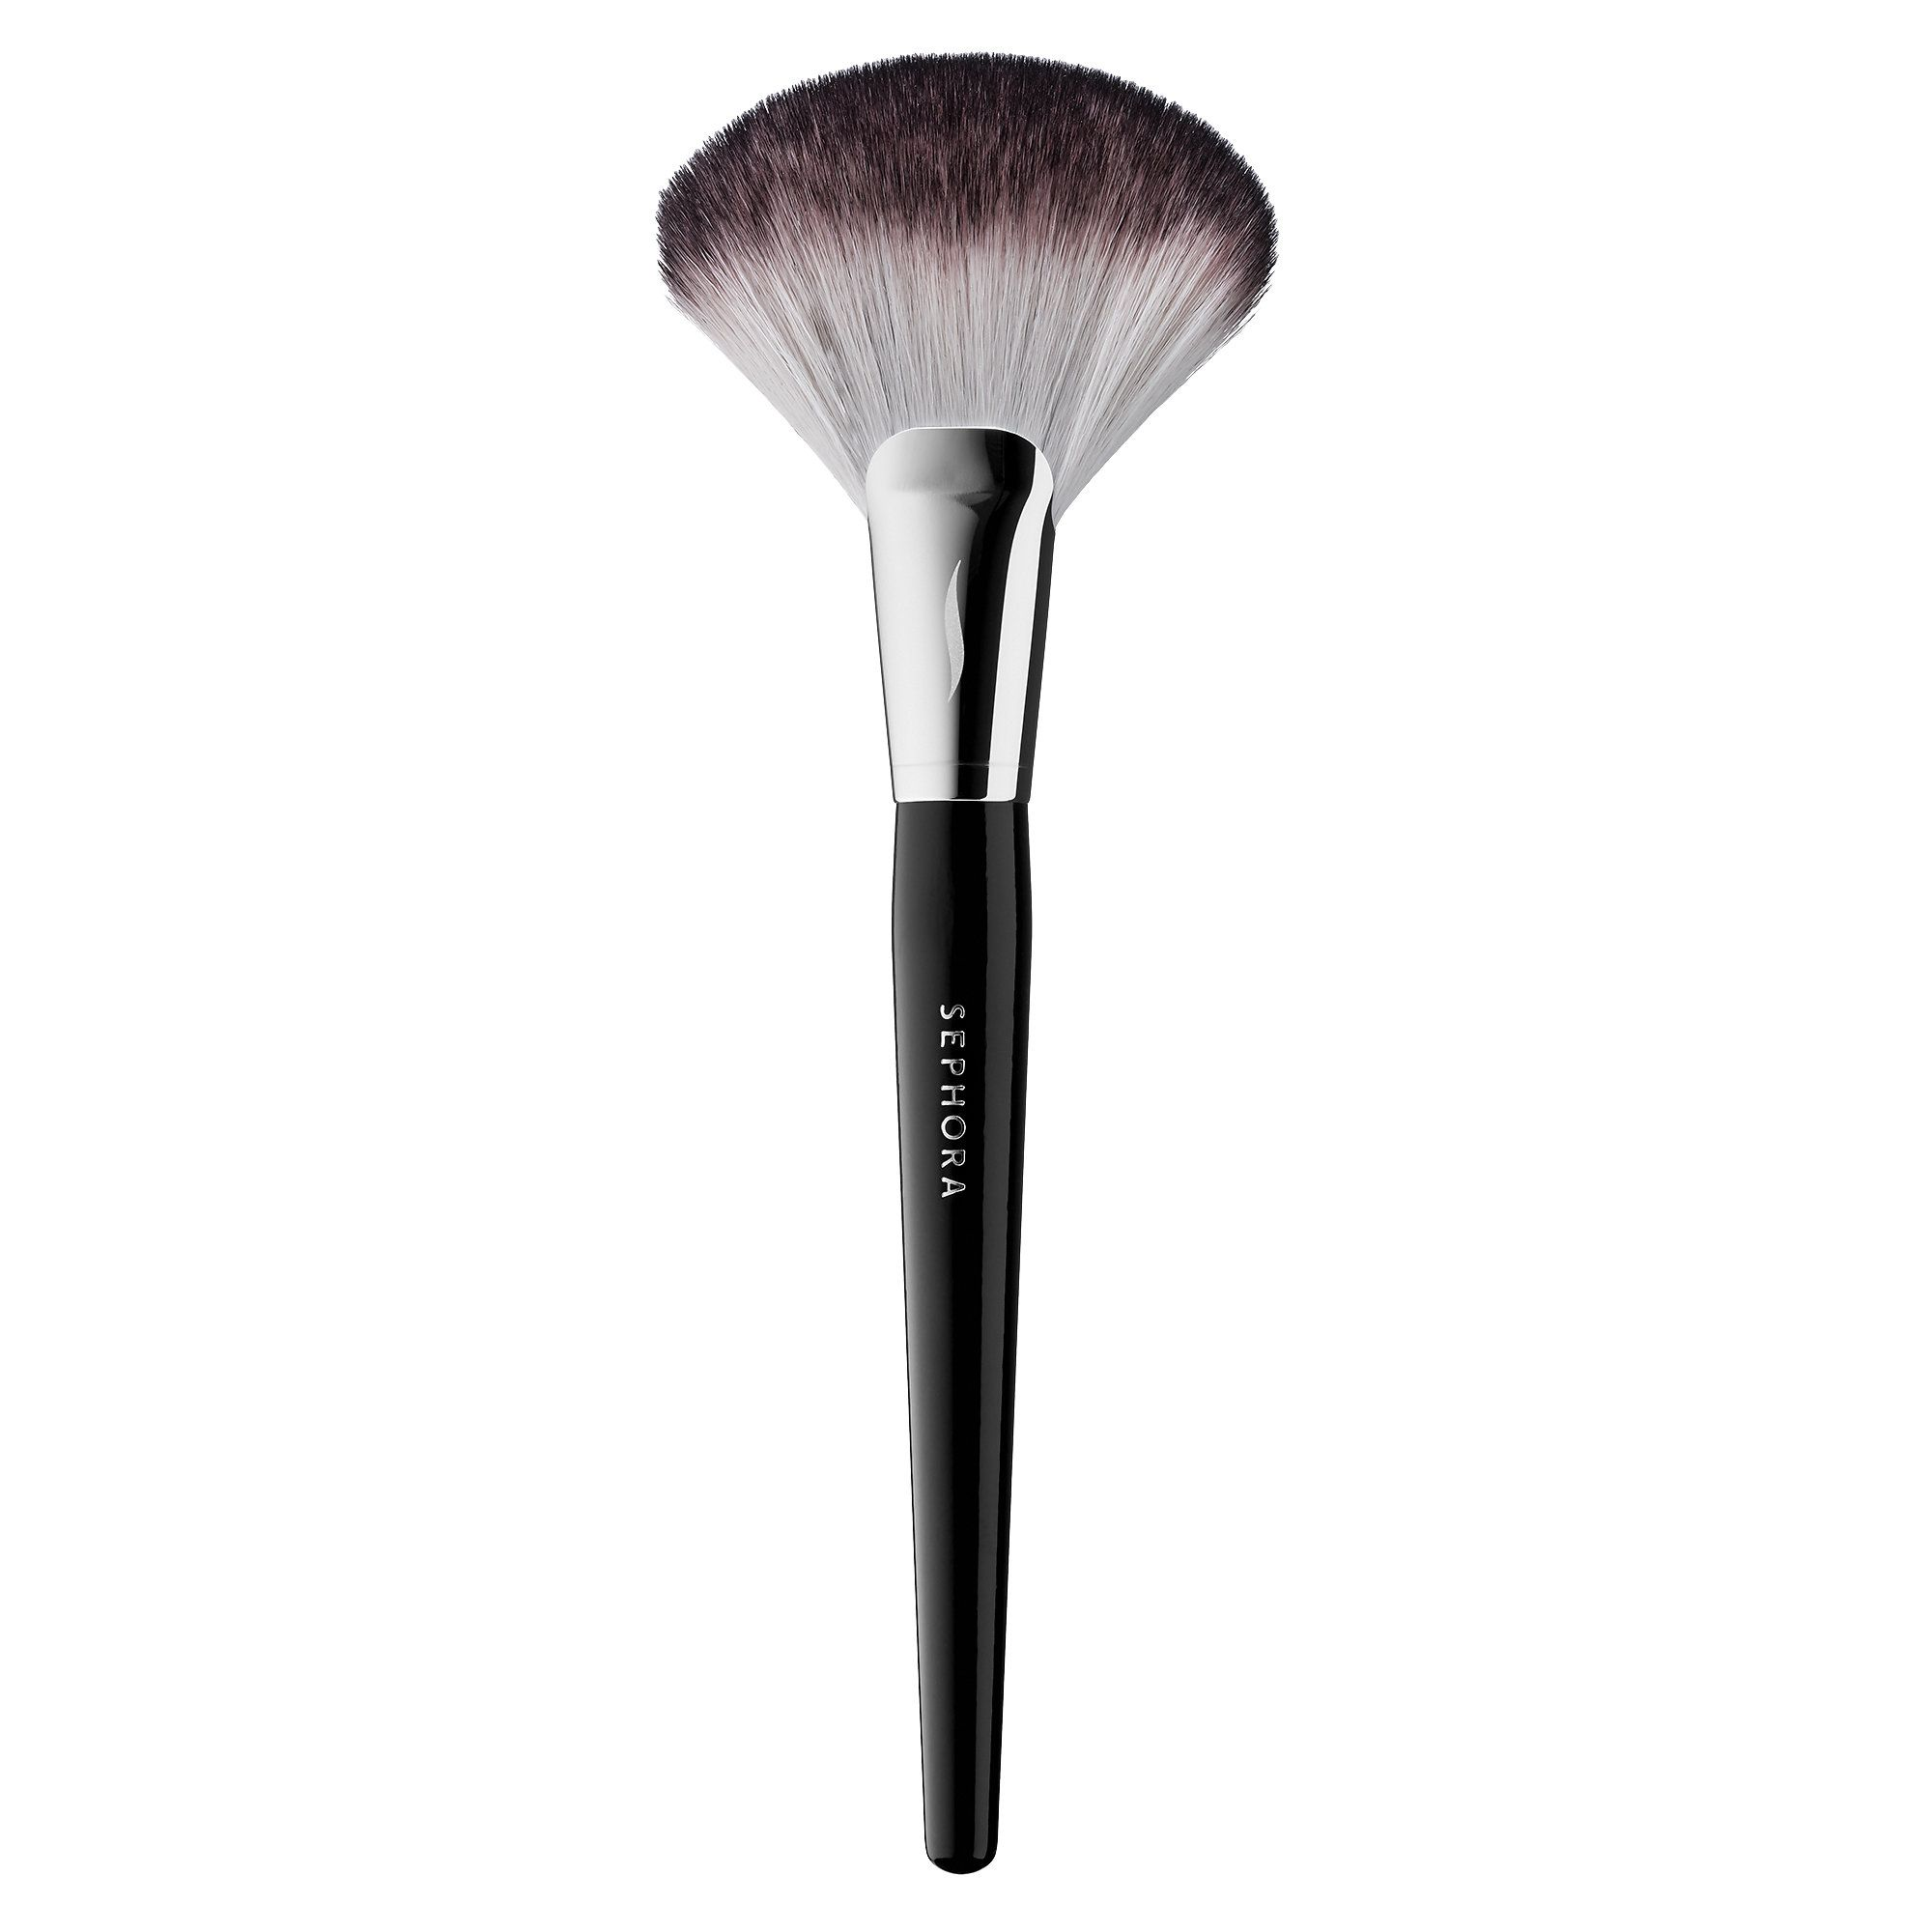 PRO Featherweight Fan Brush 92 SEPHORA COLLECTION